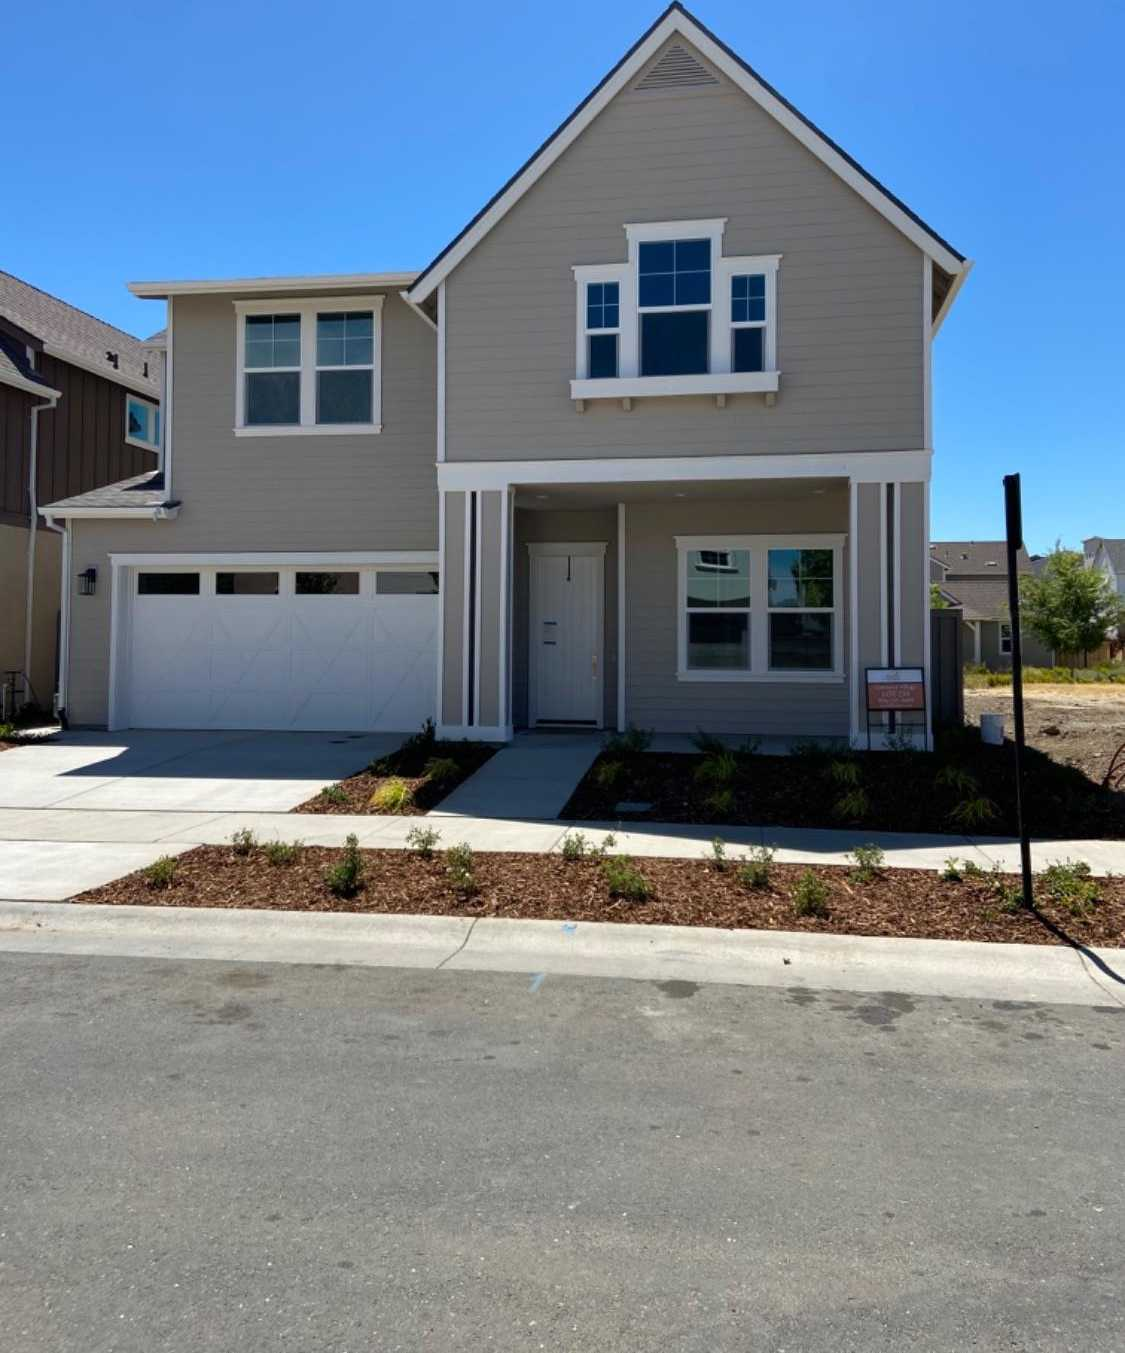 $1,024,900 - 5Br/4Ba -  for Sale in Davis